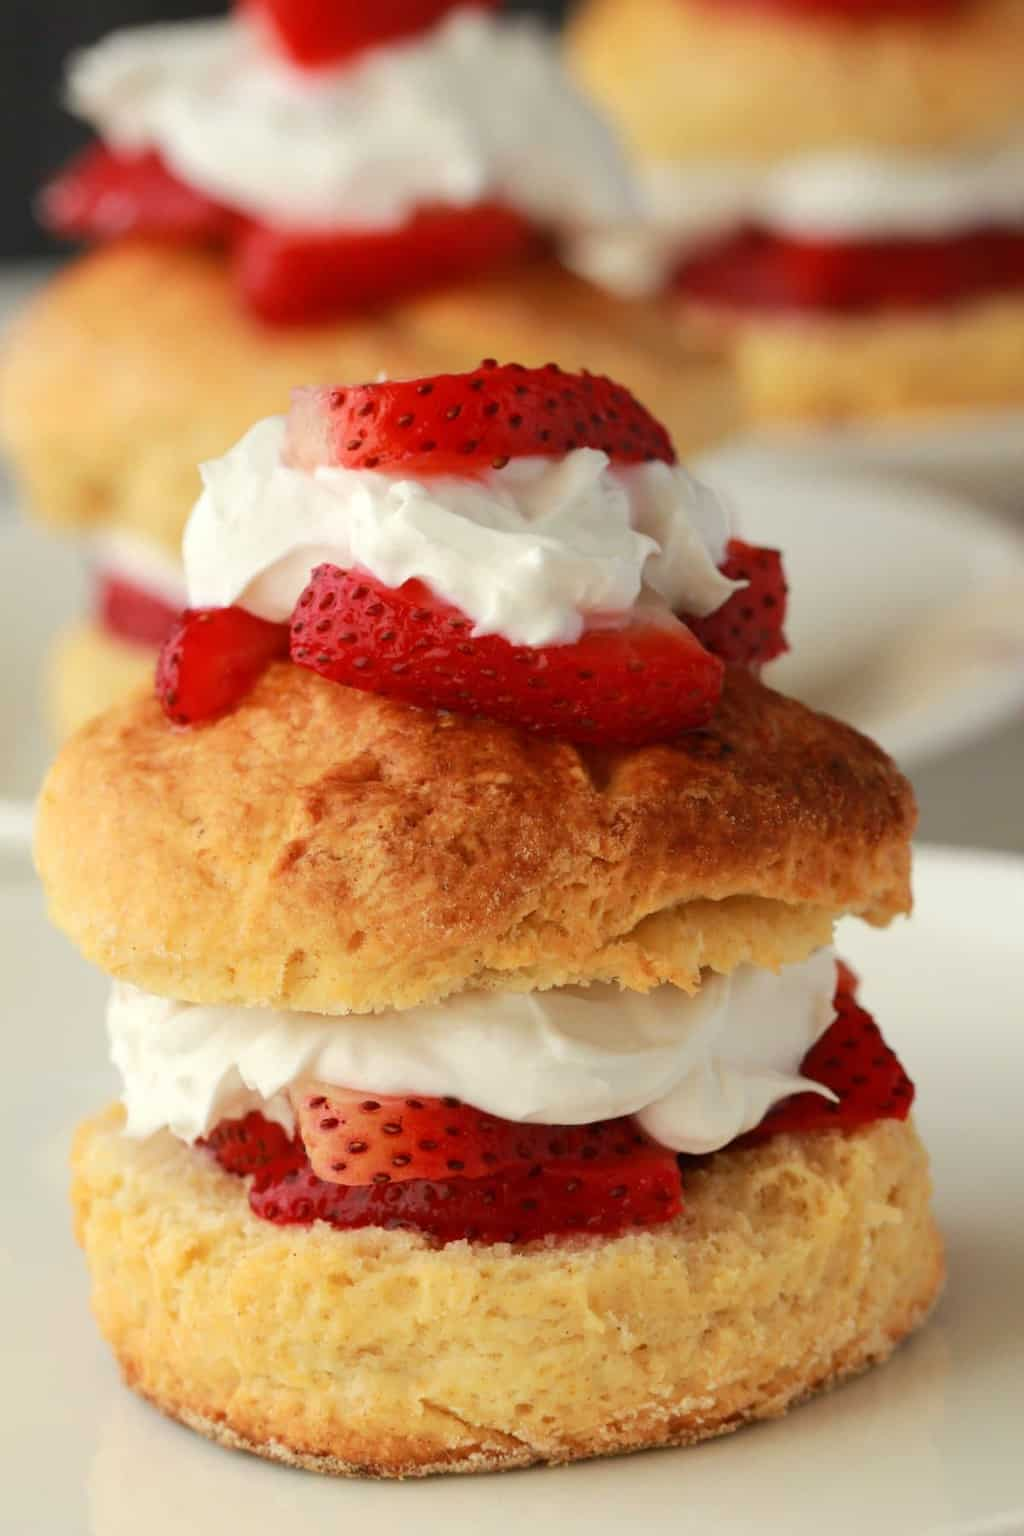 Vegan strawberry shortcake topped with whipped cream and strawberries on a white plate.